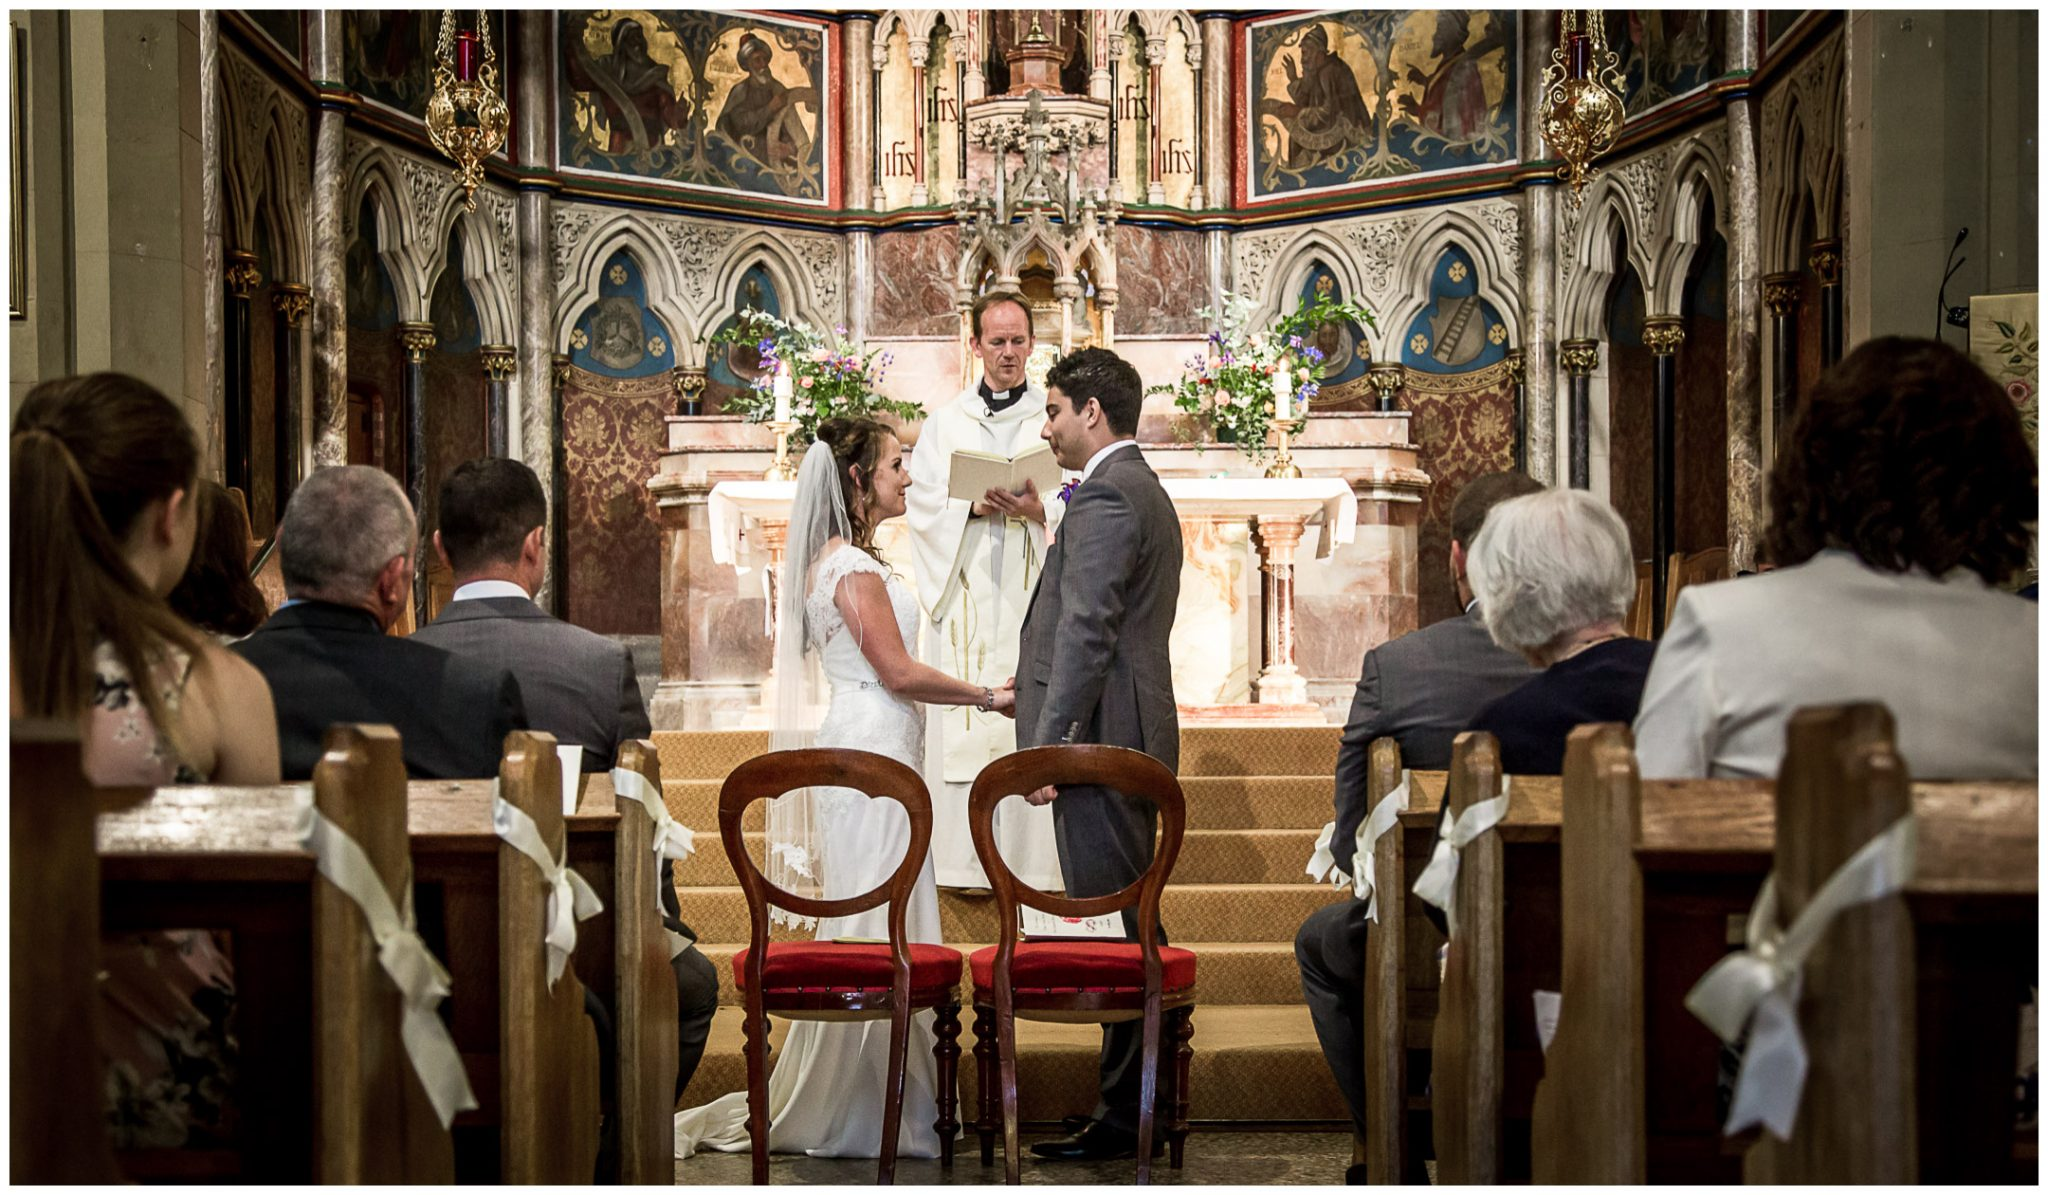 Exchange of vows between bride and groom at St Bede's Church Basingstoke